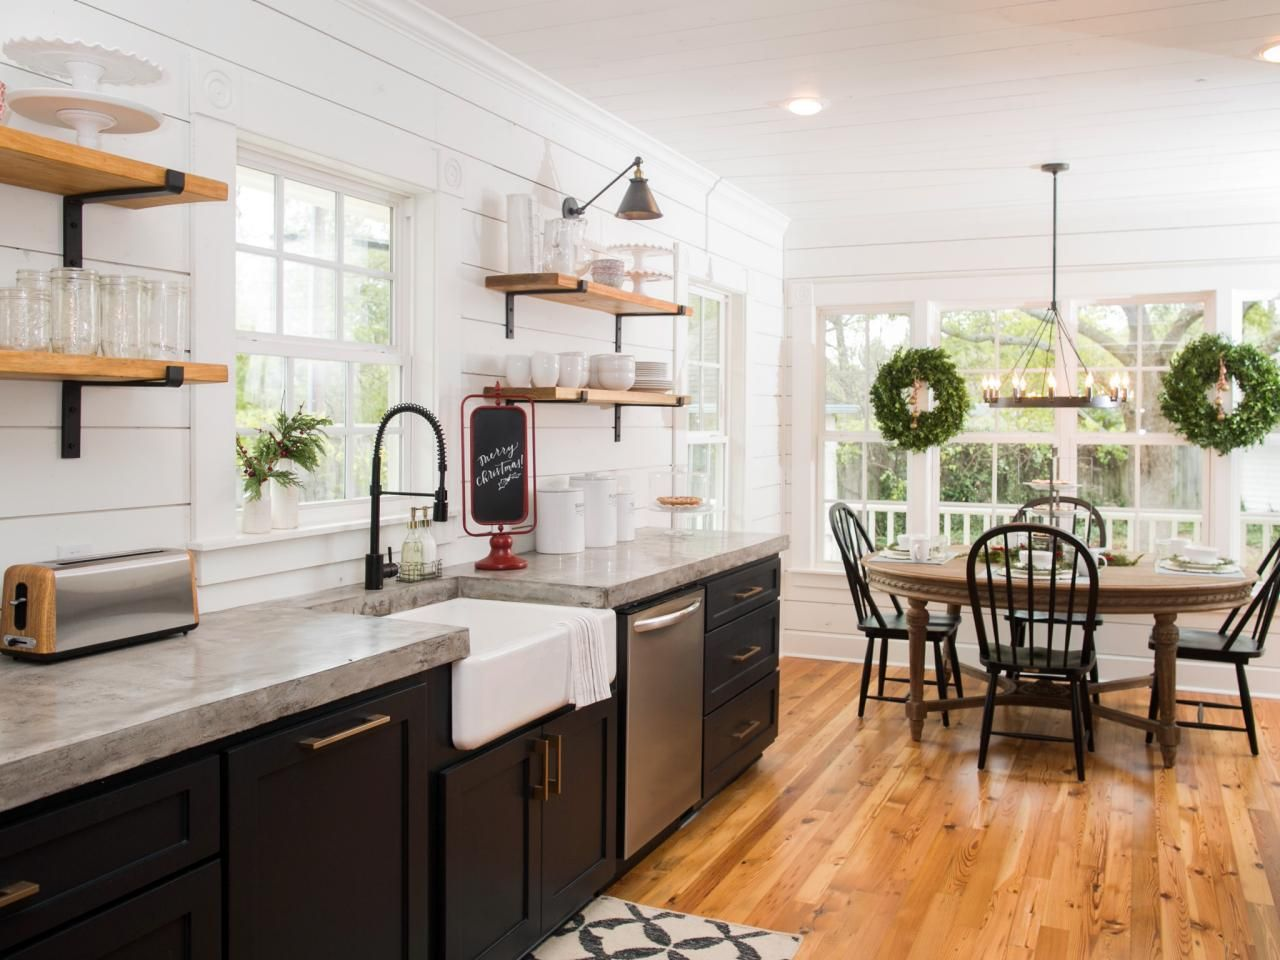 Fixer upper farm kitchens - Find The Best Of S Fixer Upper With Chip And Joanna Gaines Farmhouse